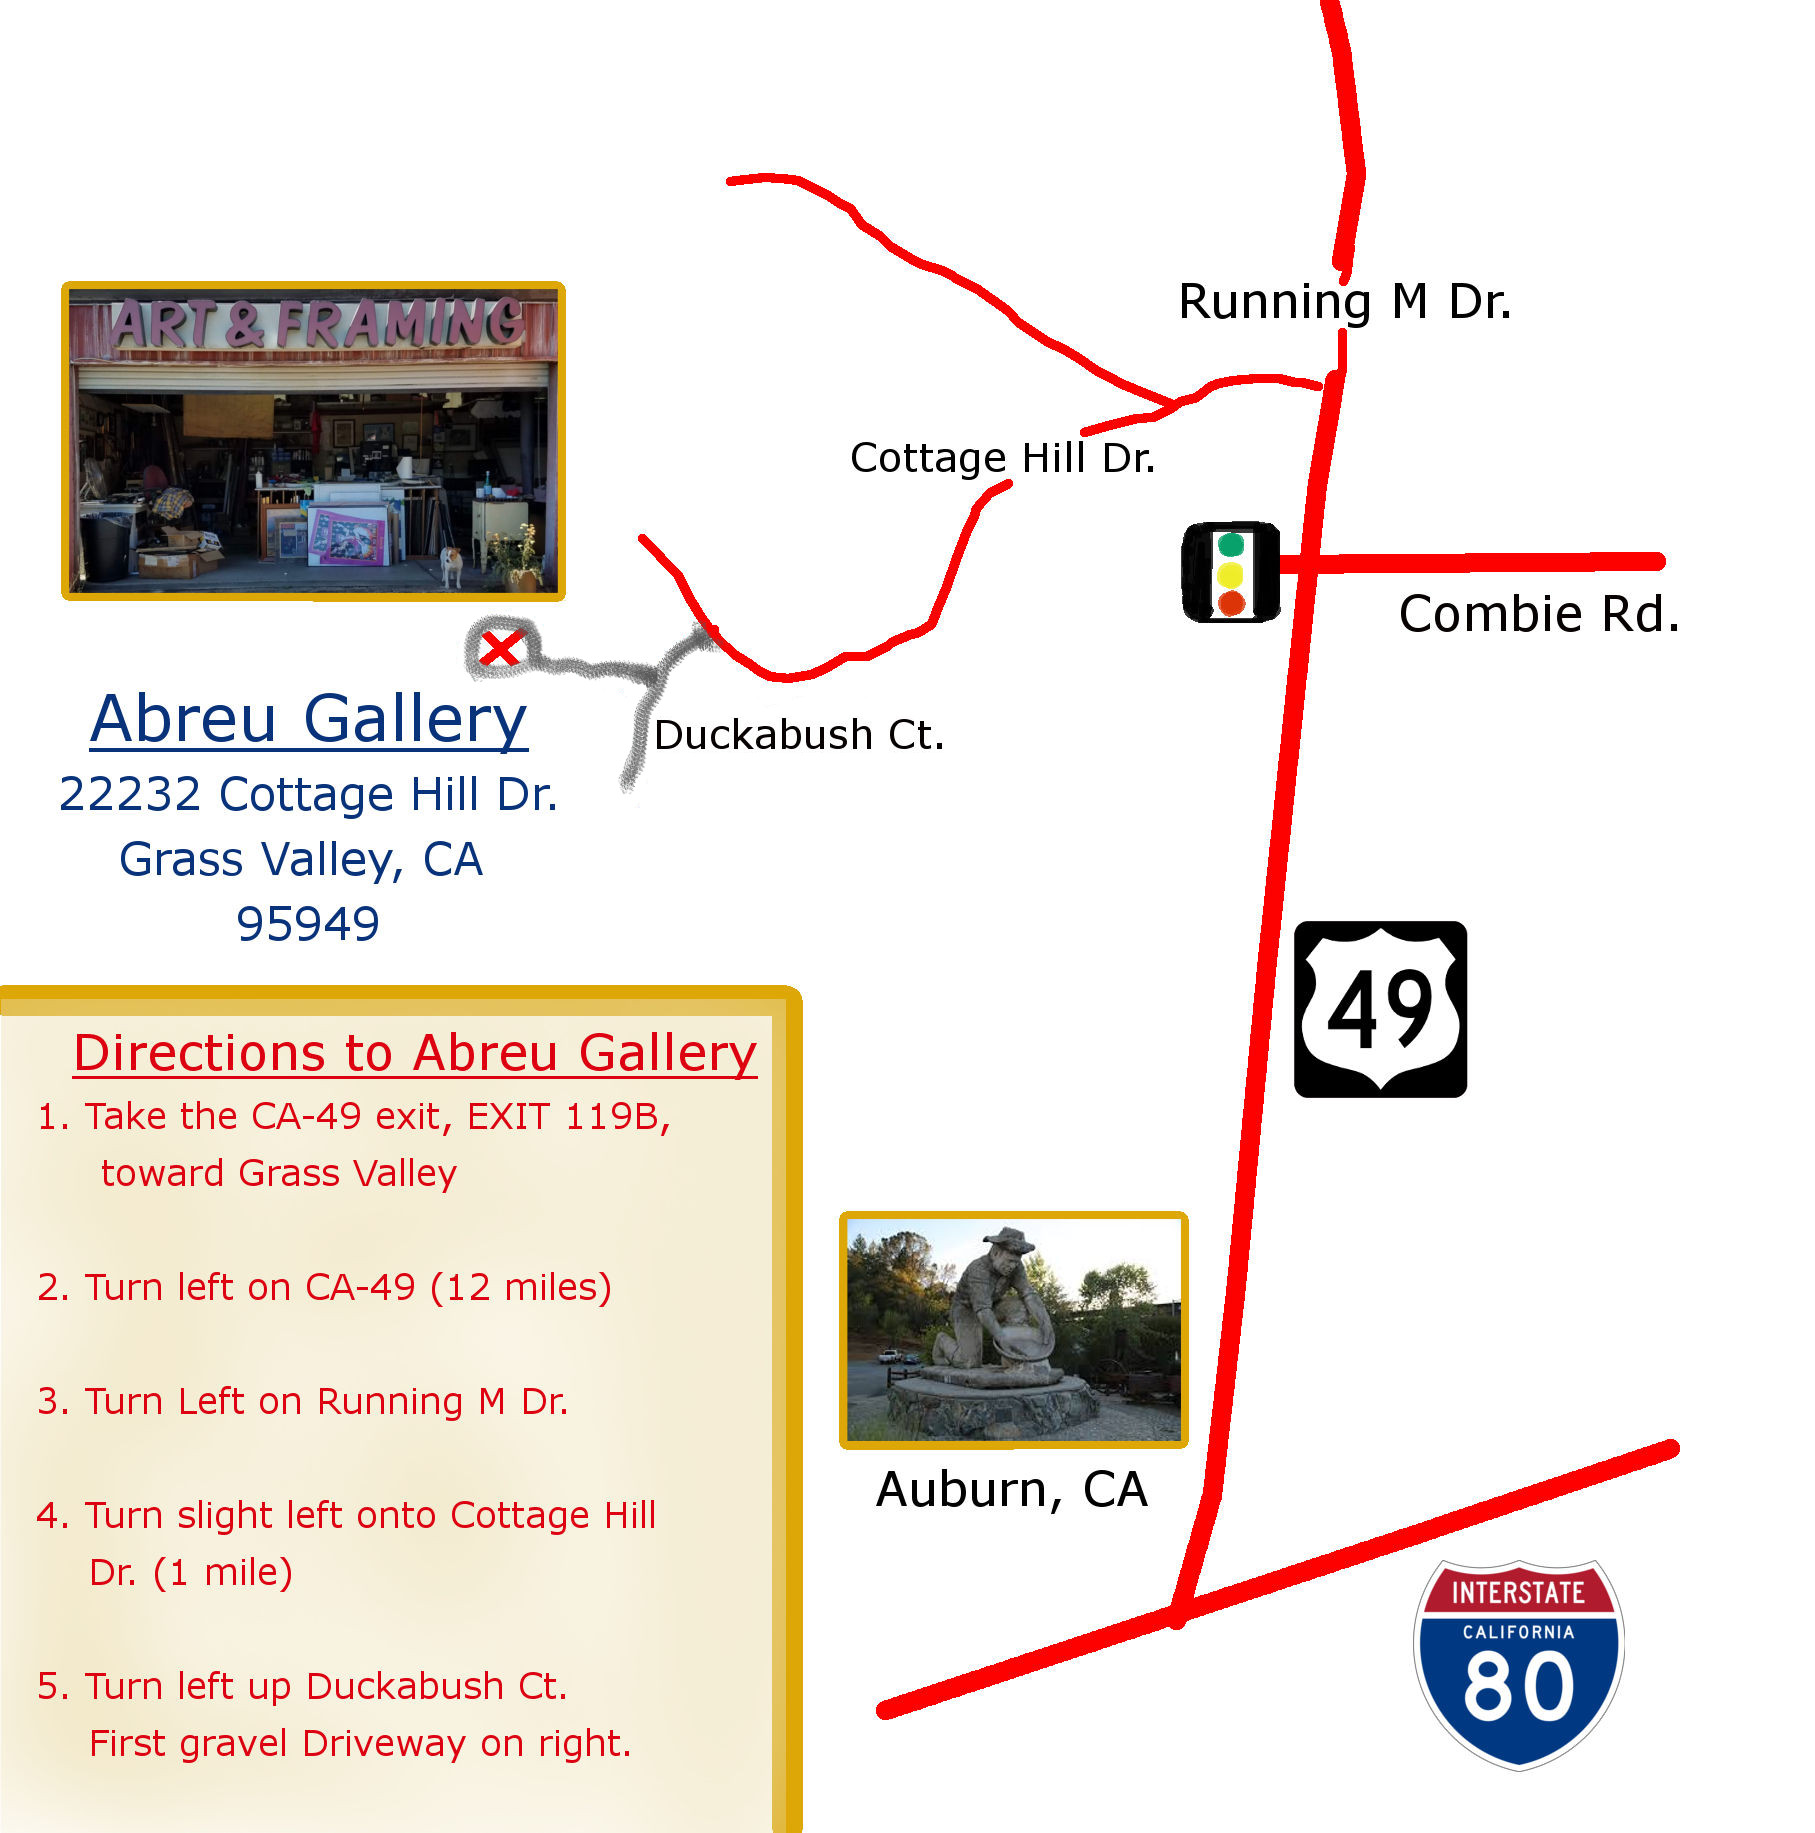 Handmade map for directions to Abreu Gallery